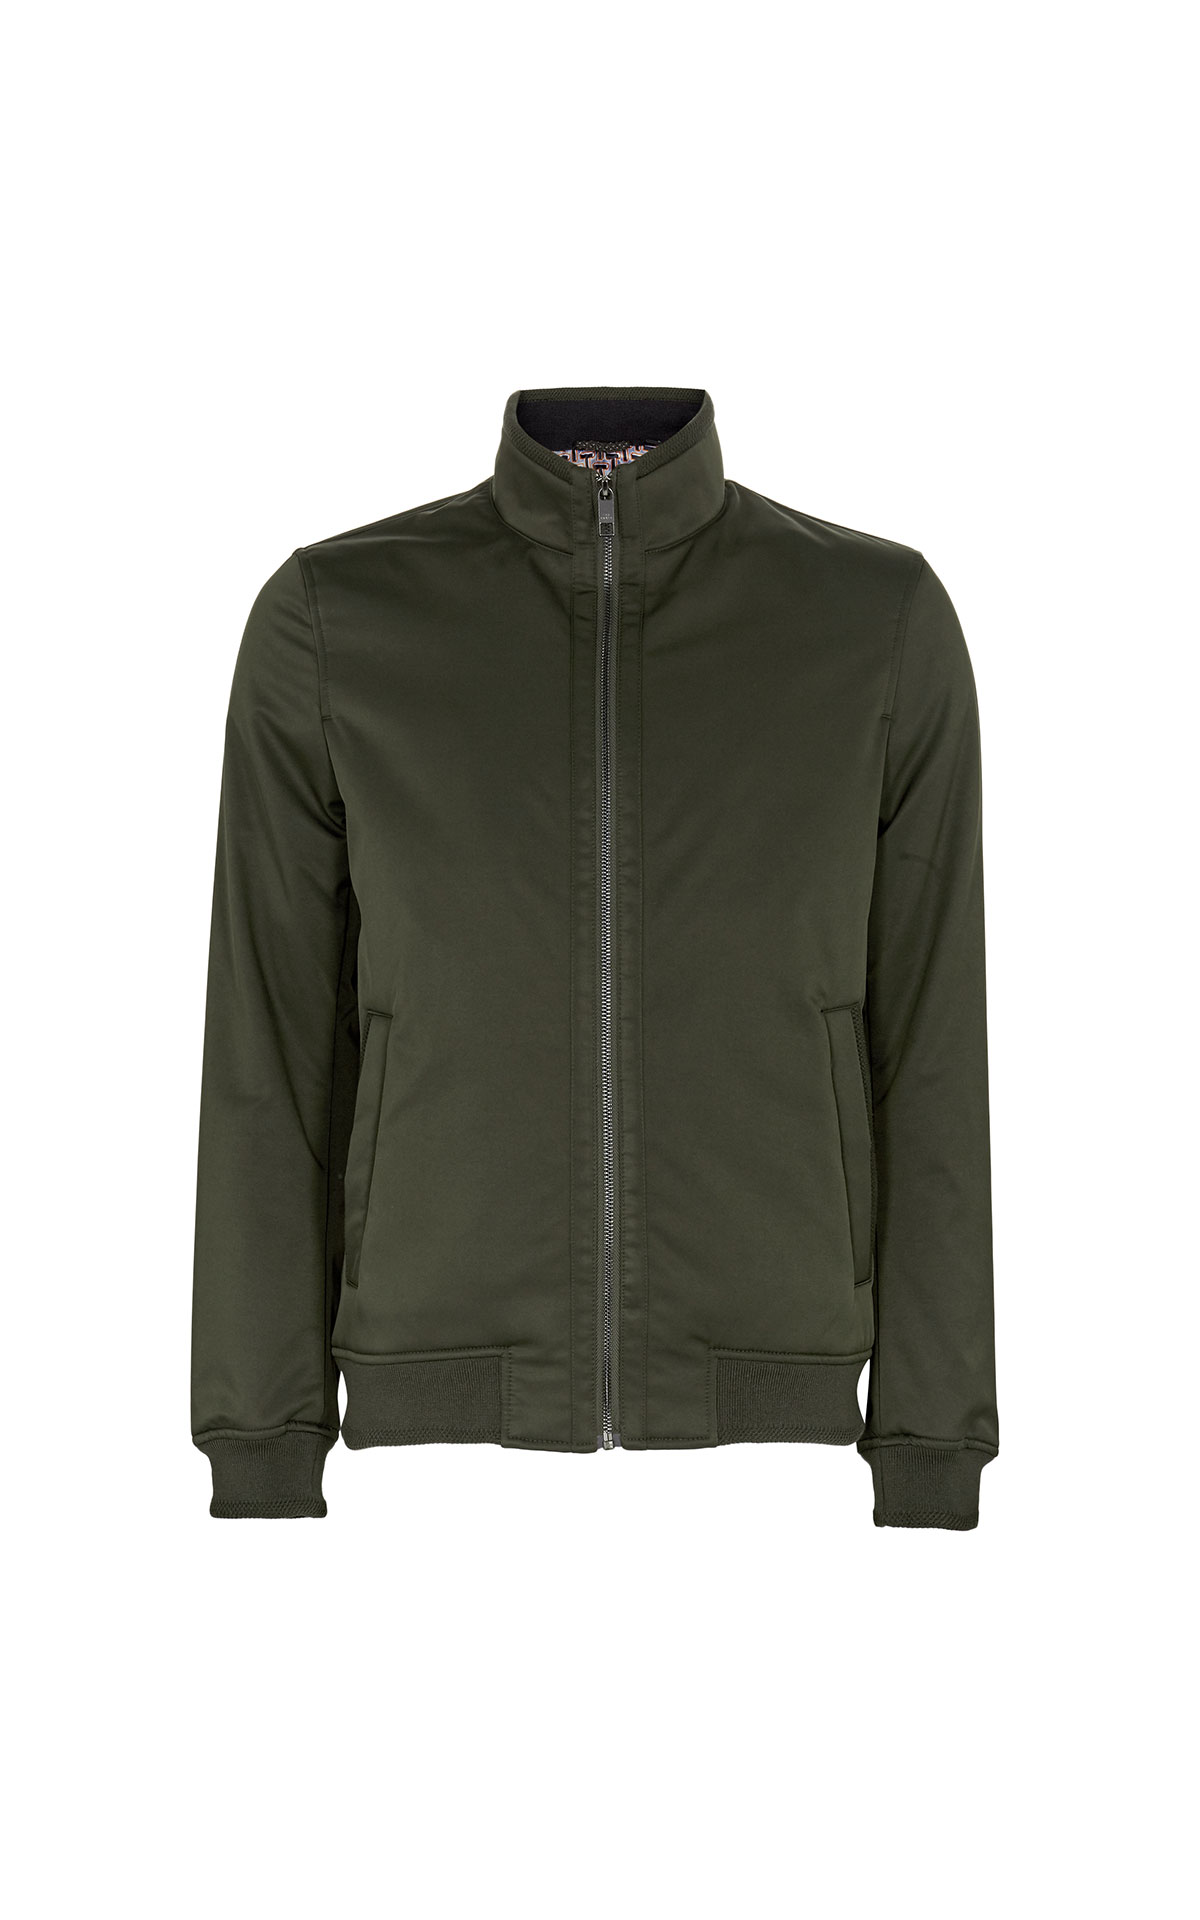 Ted Baker Yeppers khaki wadded bomber jacket from Bicester Village